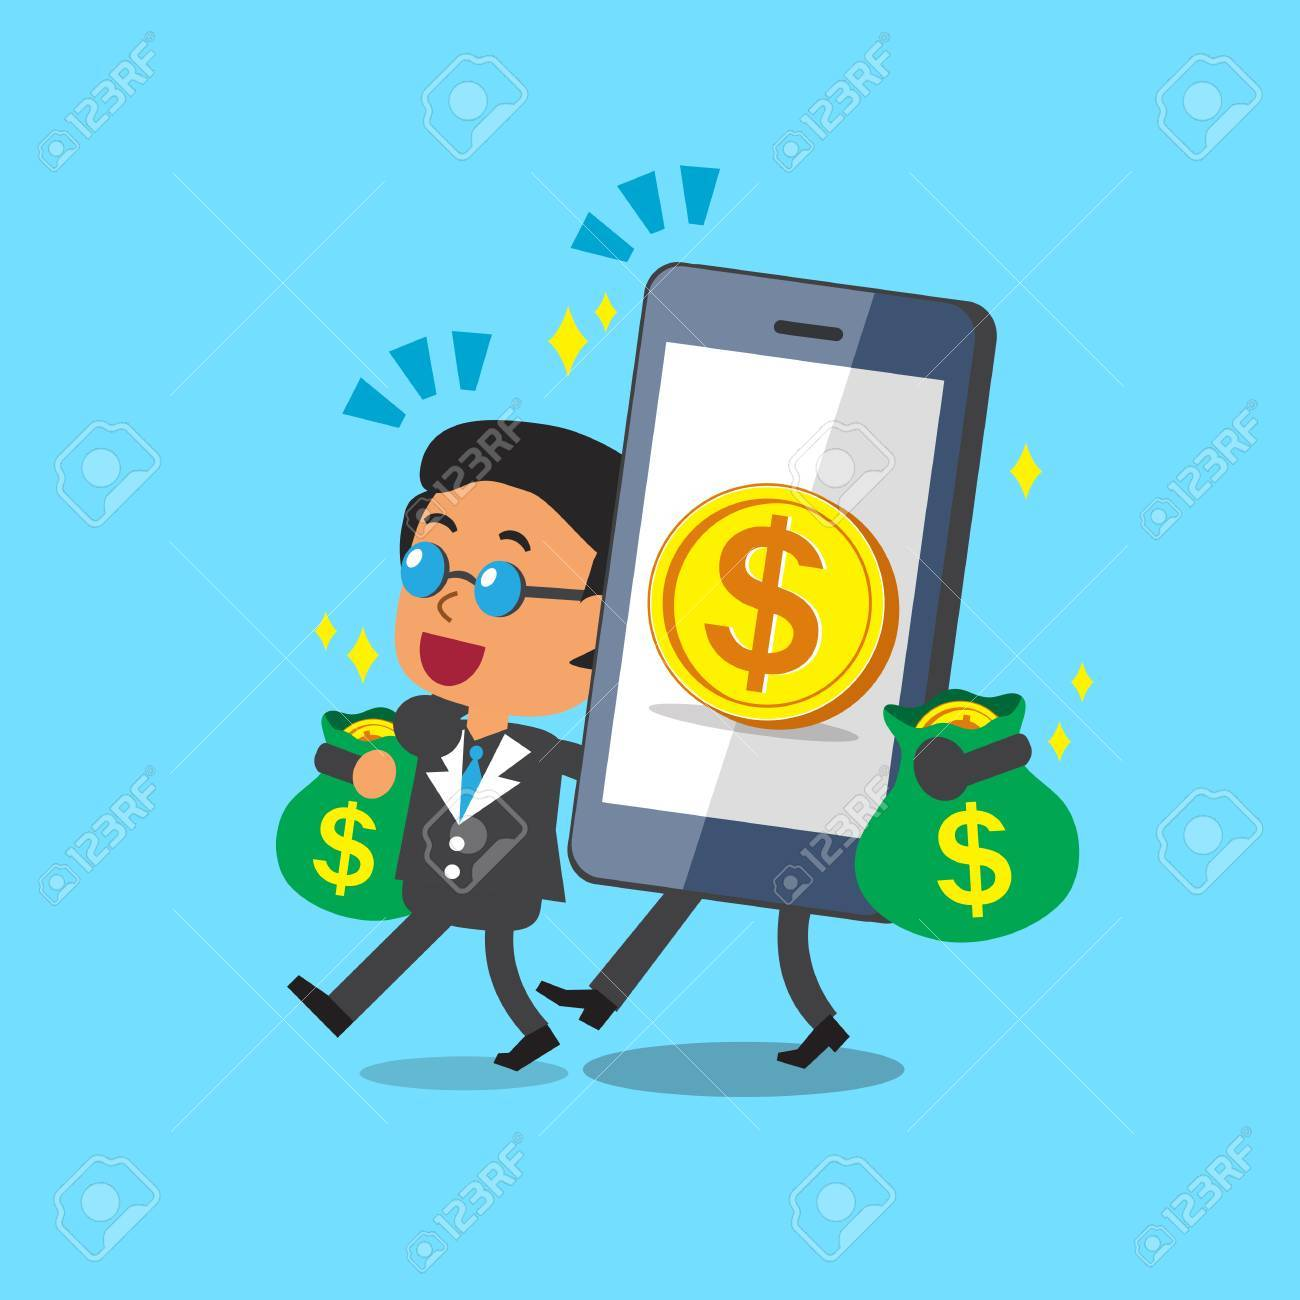 Cartoon Smartphone Help Business Boss To Earn Money Royalty Free ...